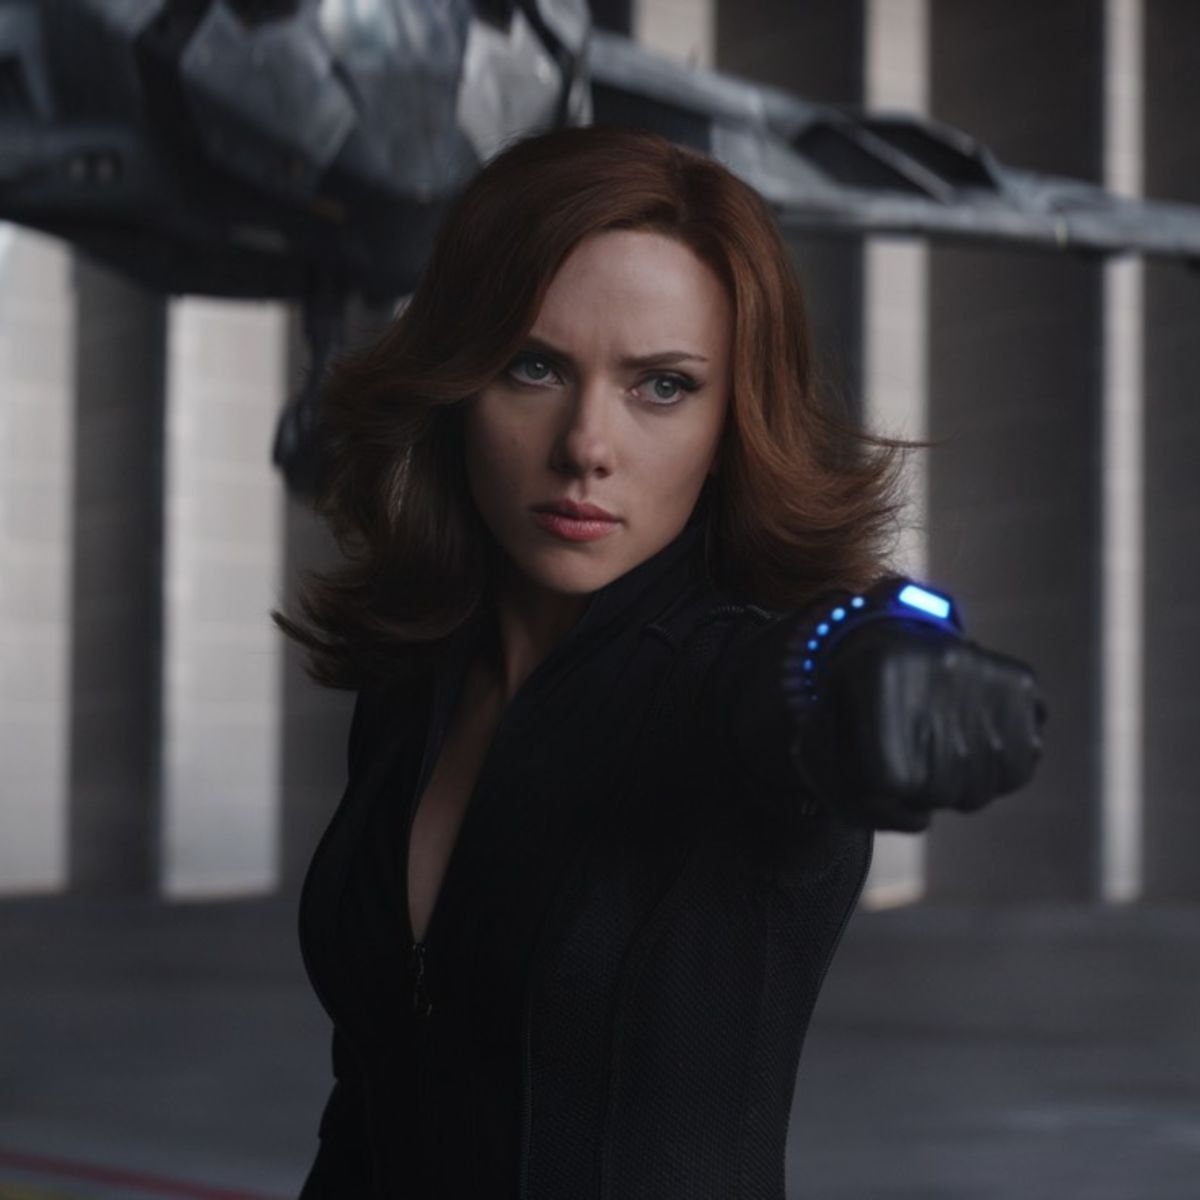 Marvel hires female director for upcoming Black Widow film